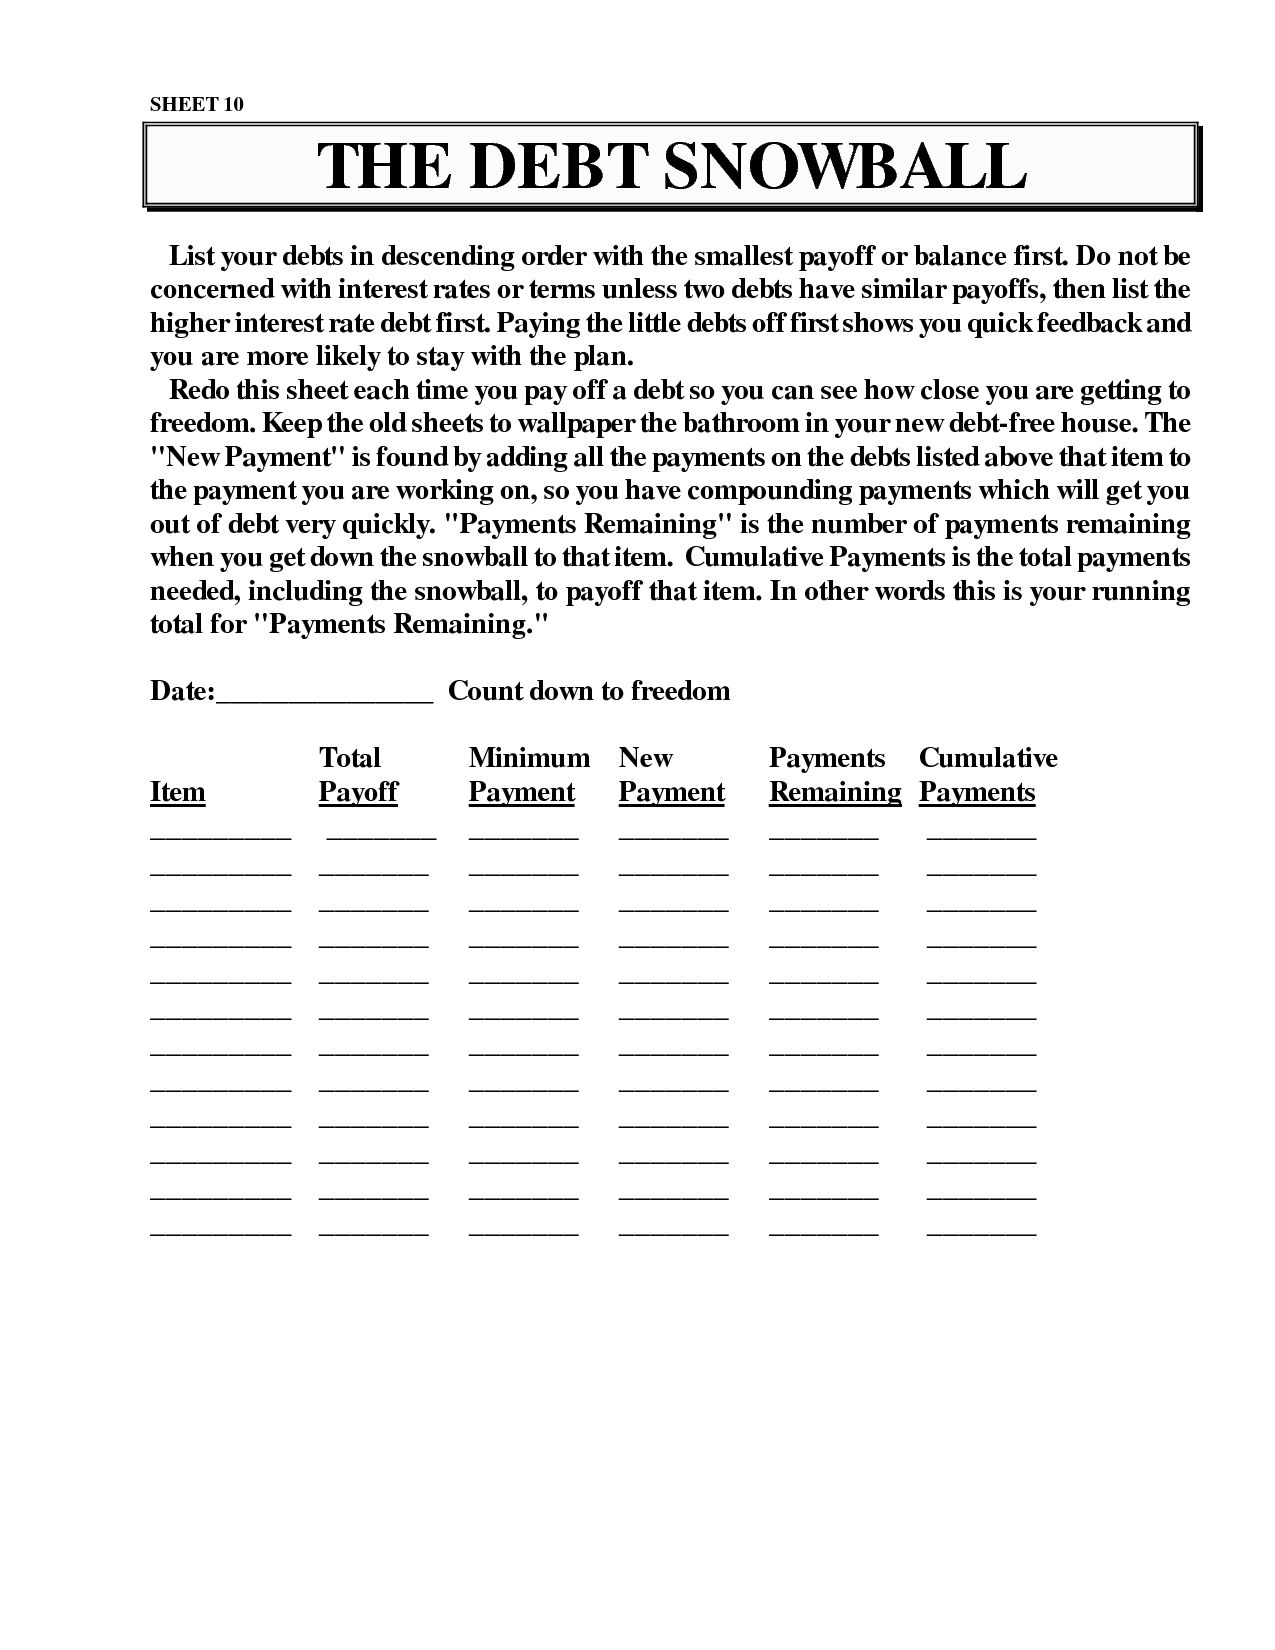 16 Best Images of Dave Ramsey Budget Worksheet PDF  Free Printable Dave Ramsey Budget